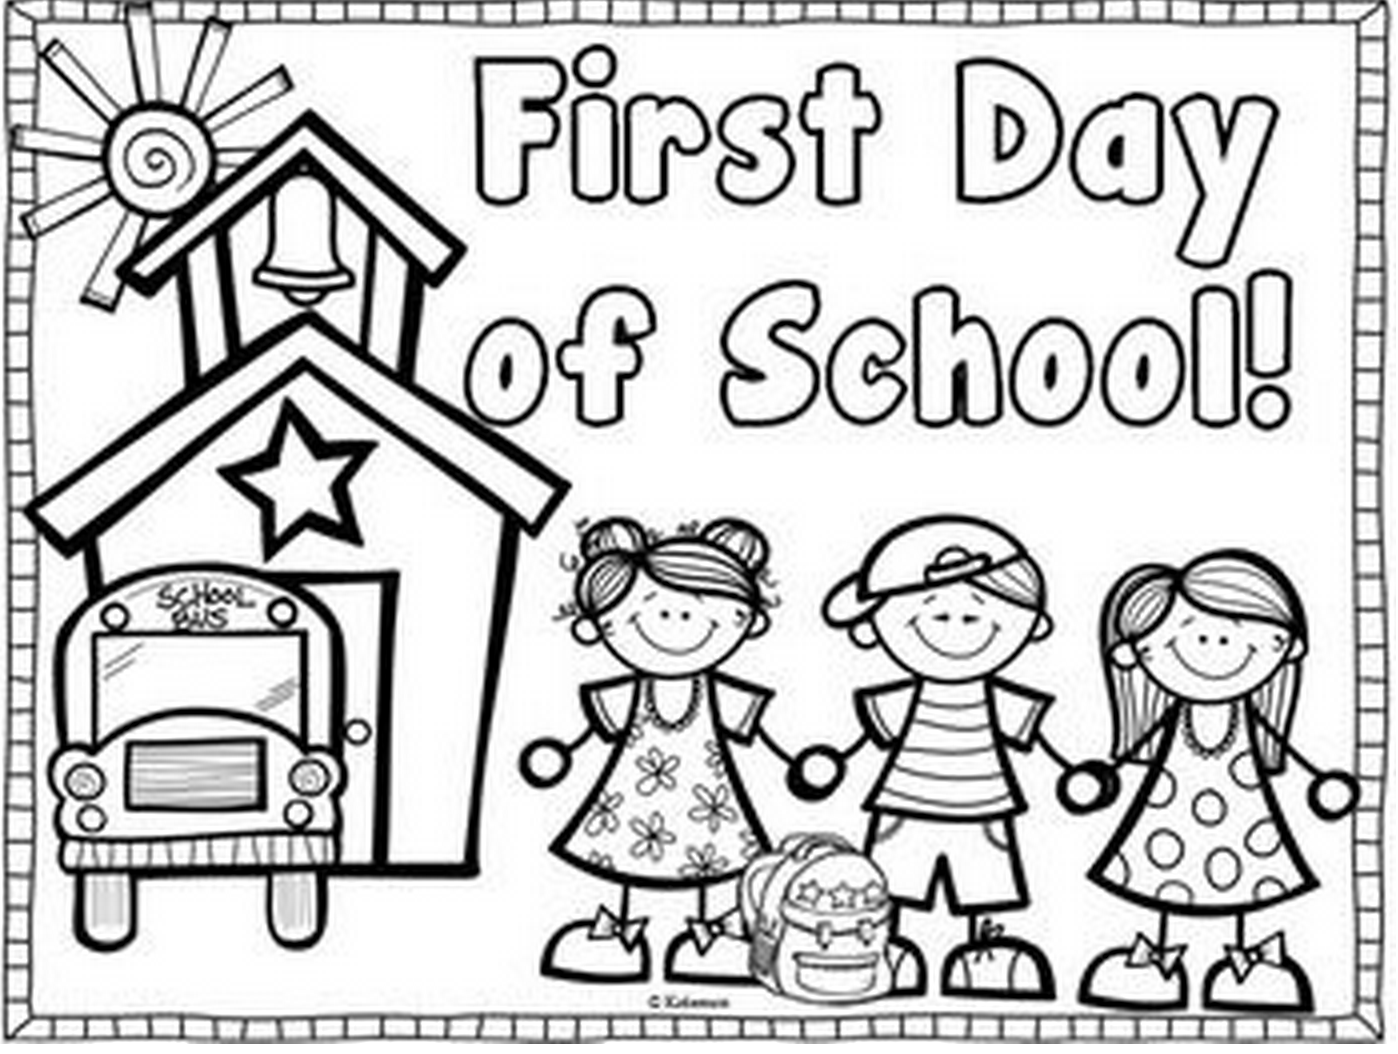 first day of school coloring page - First Day Of School Coloring Page